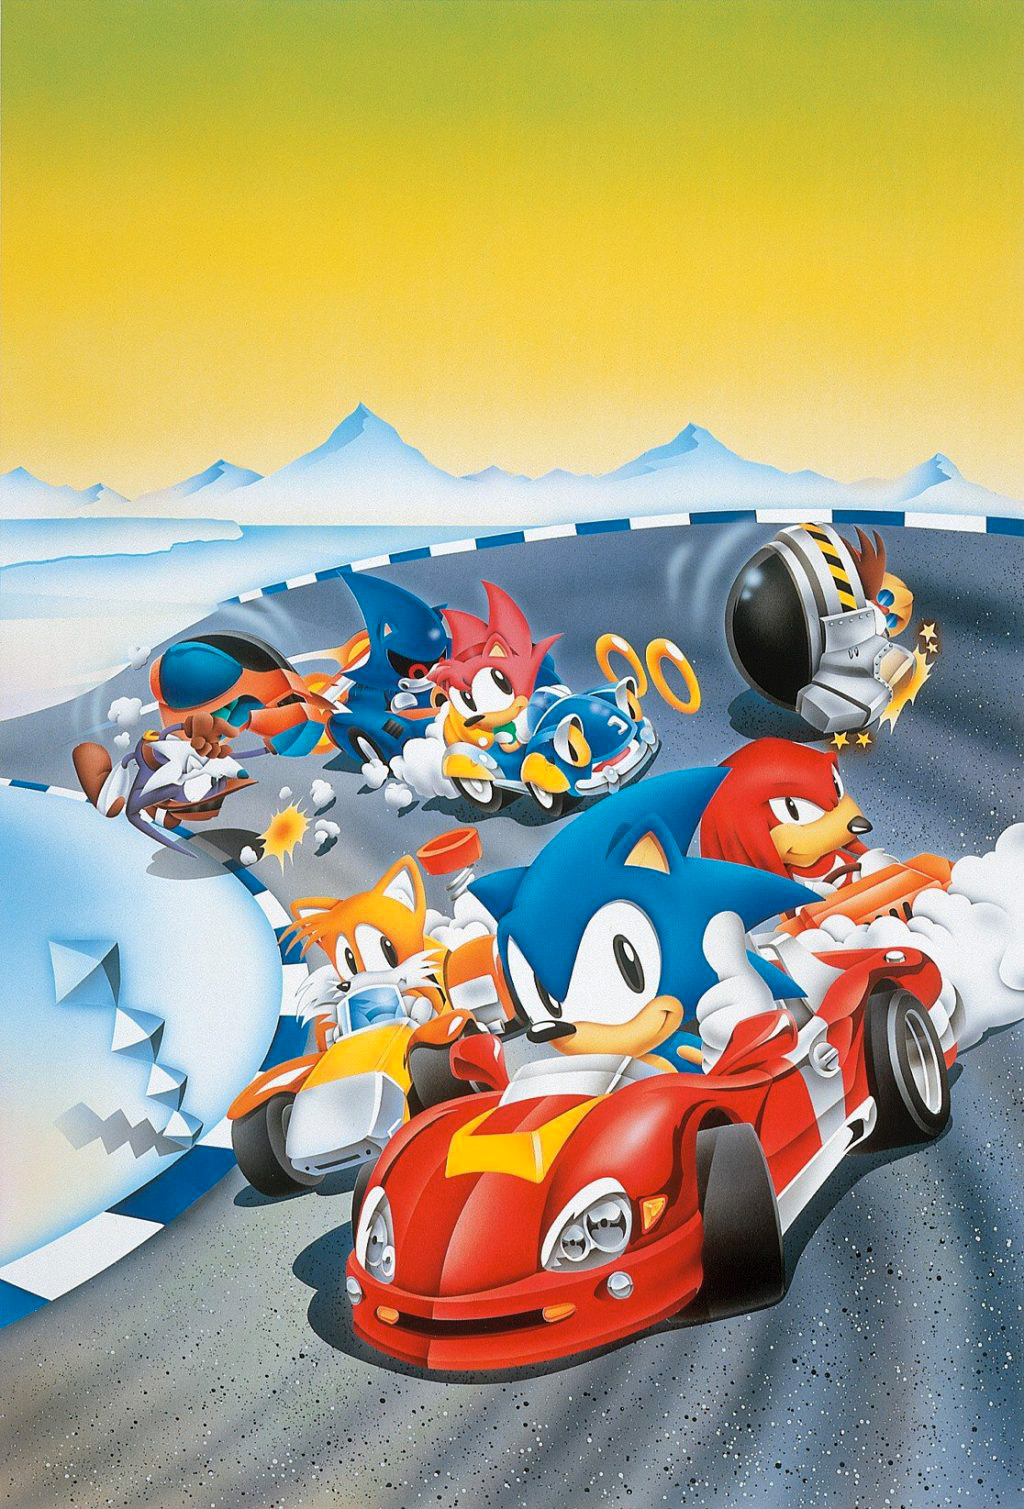 Category Sonic Drift 2 Images Sonic News Network